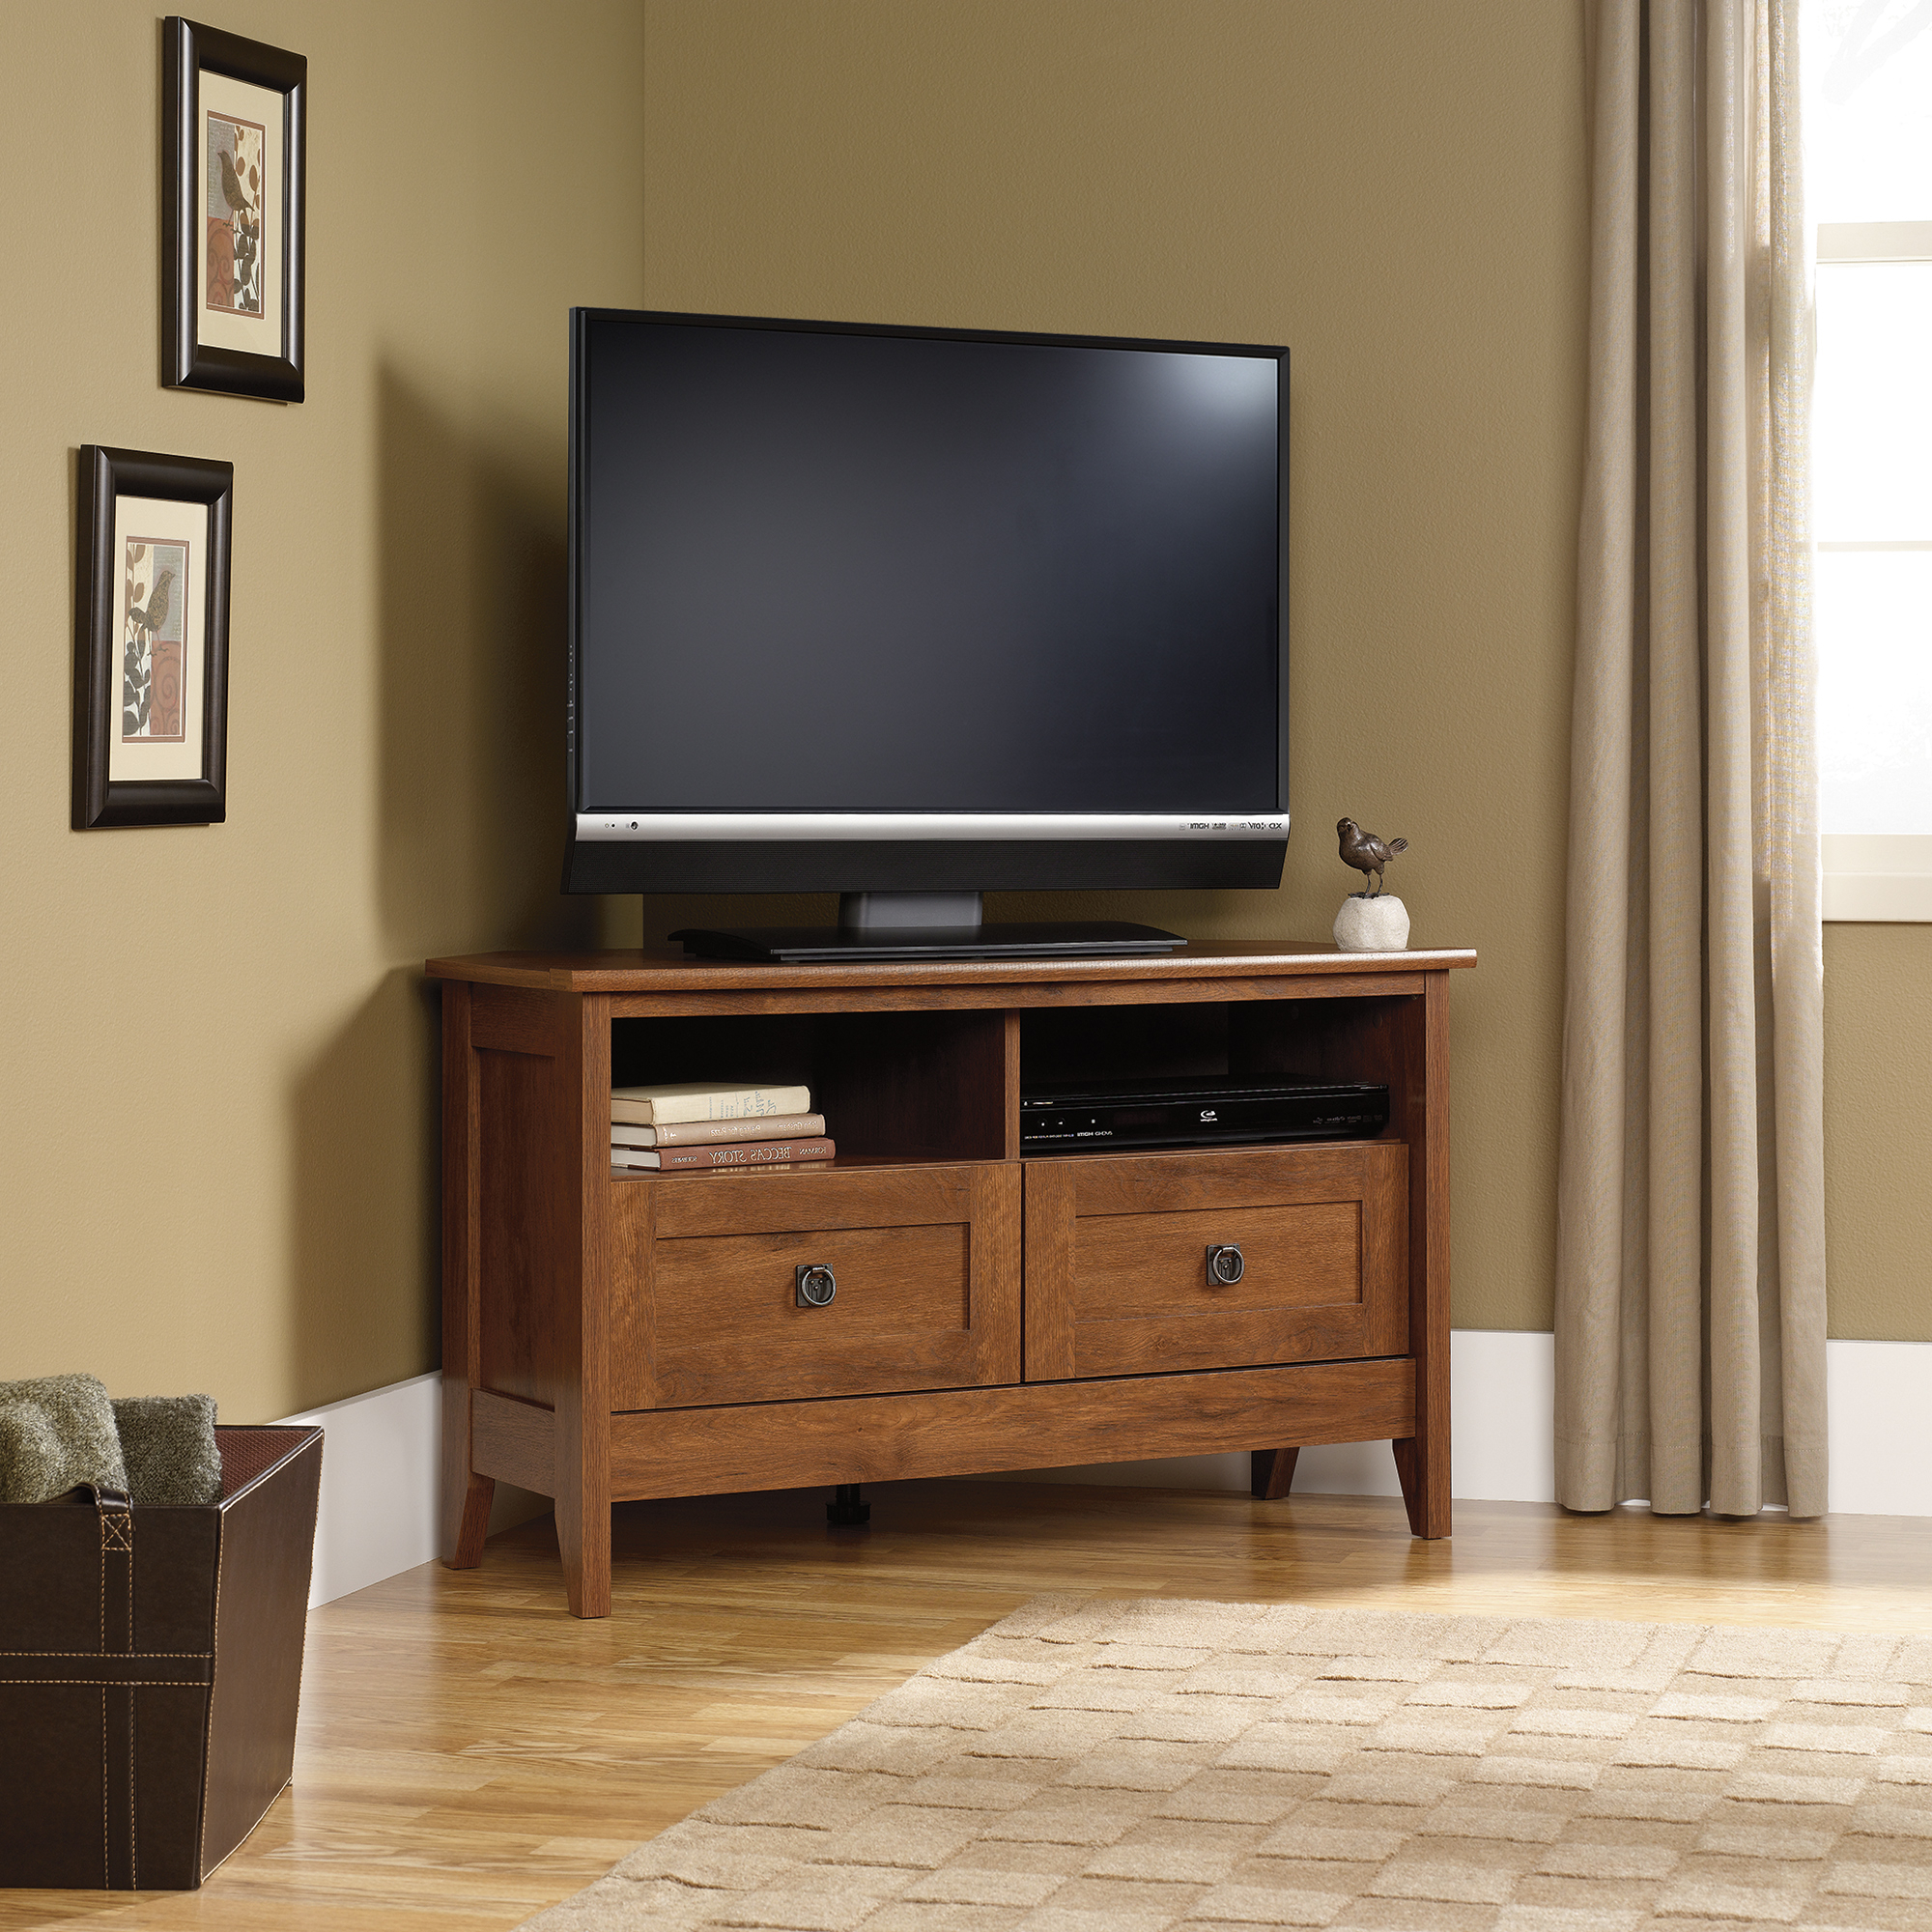 Sauder For Famous Corner Wooden Tv Cabinets (View 3 of 20)